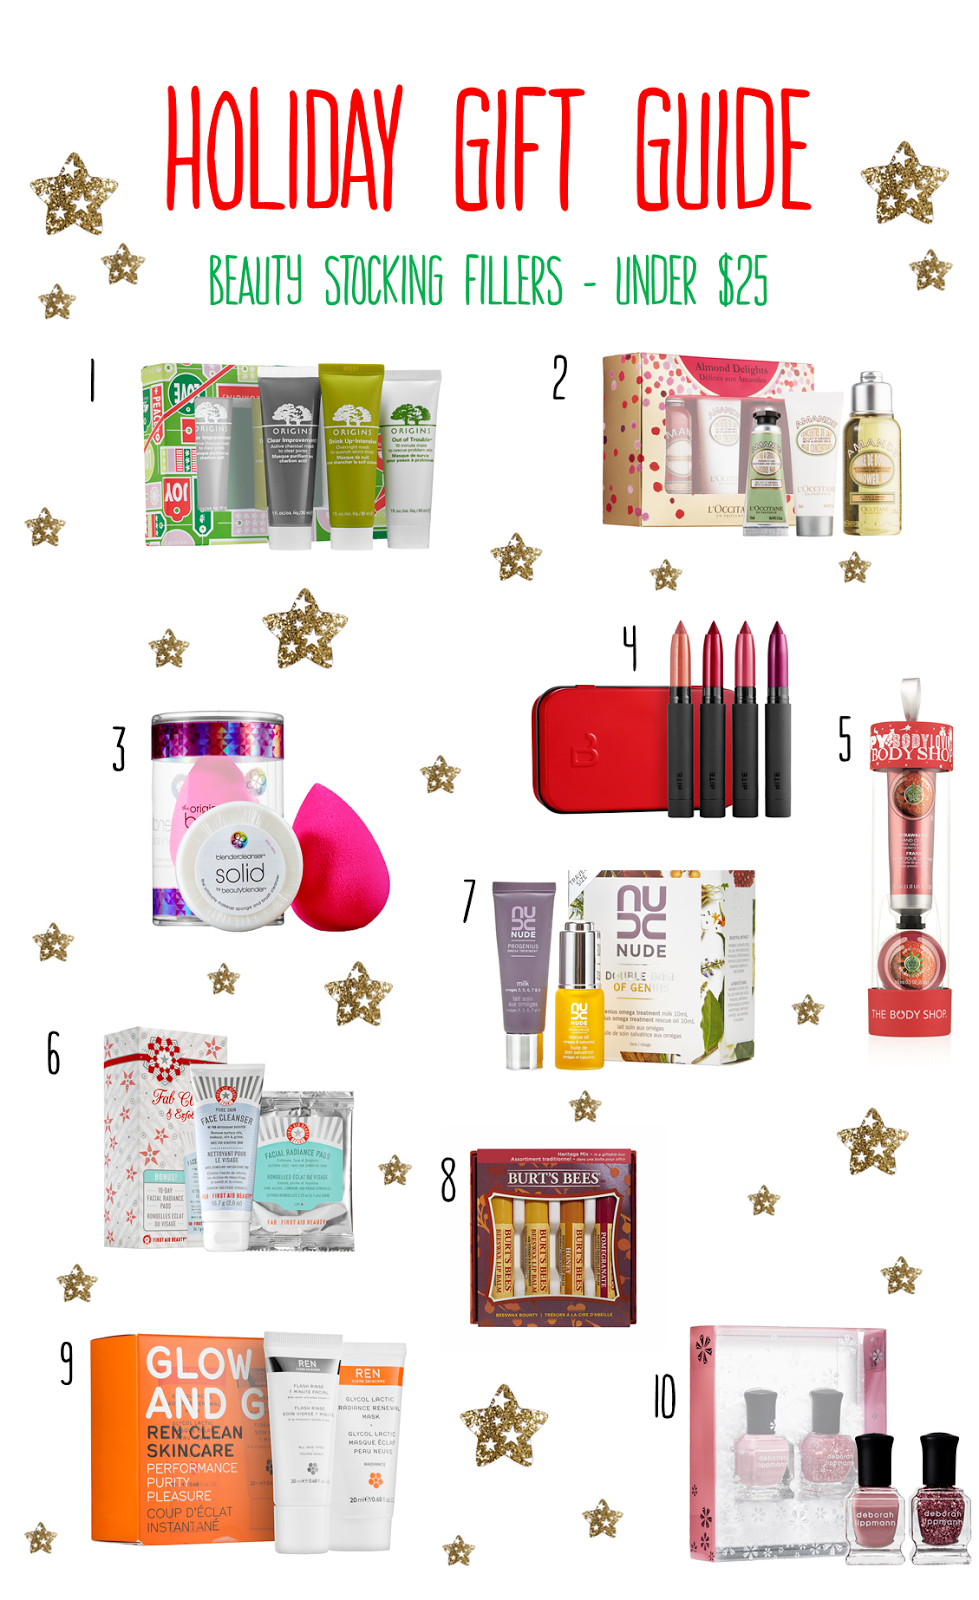 Holiday Gift Guide | Beauty Stocking Fillers Under $25